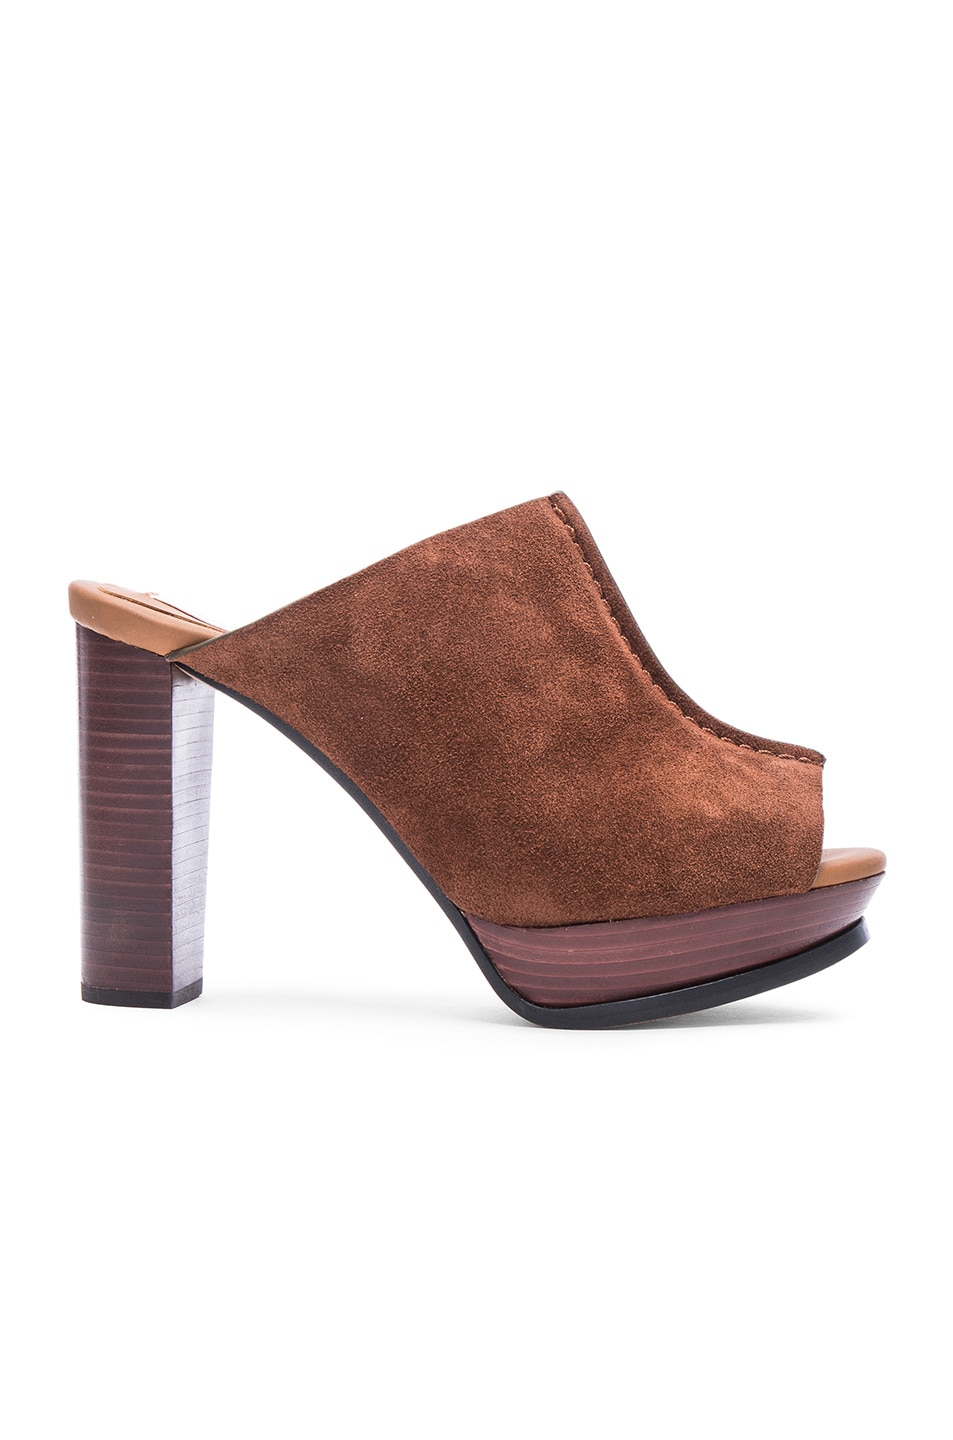 Image 1 of See By Chloe Suede Mule Platform Heels in Cola